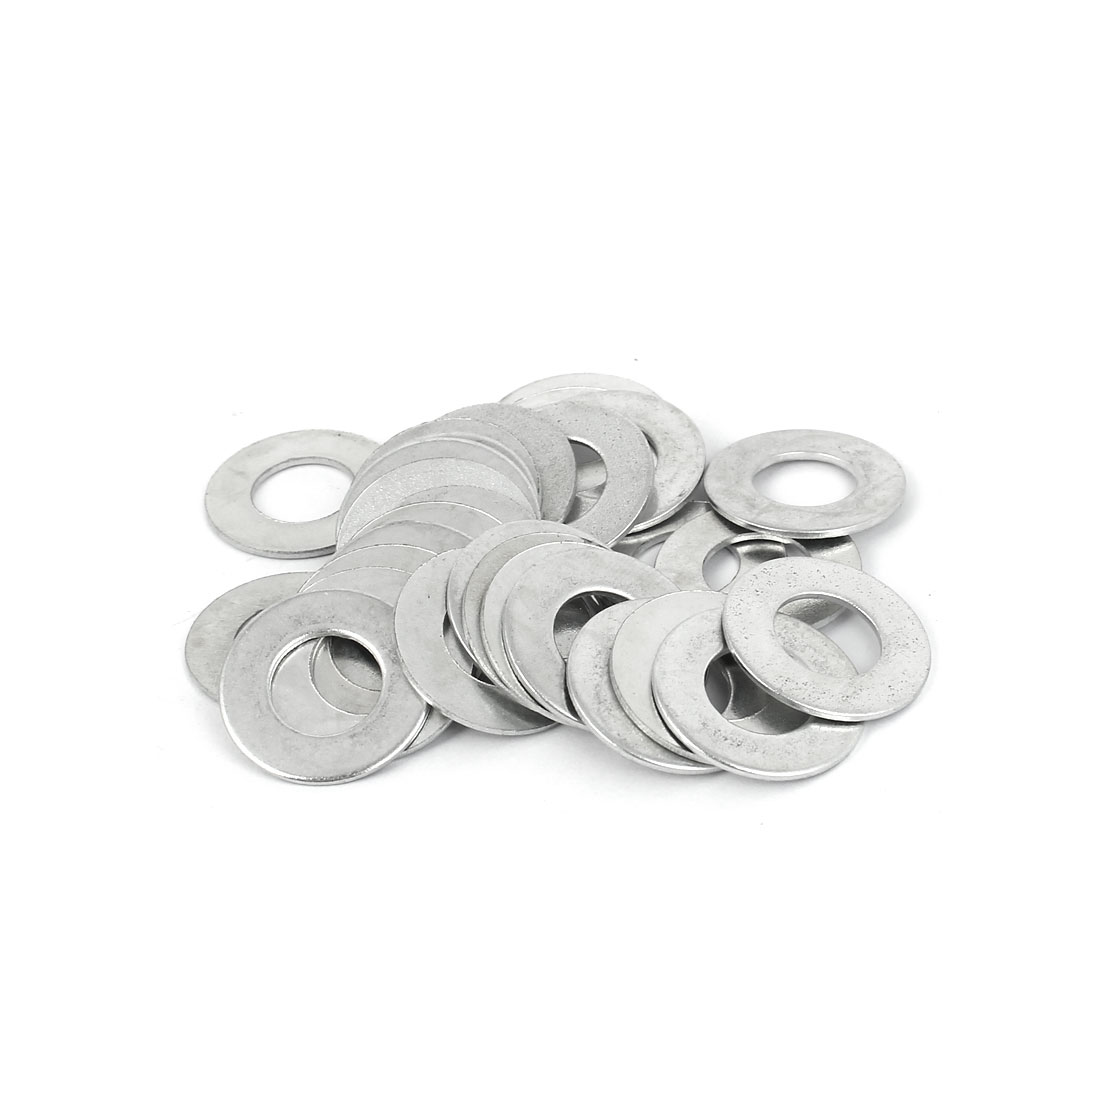 10mm x 20mm x 1mm Zinc Plated Flat Spacers Washers Gaskets Fasteners GB97 30PCS